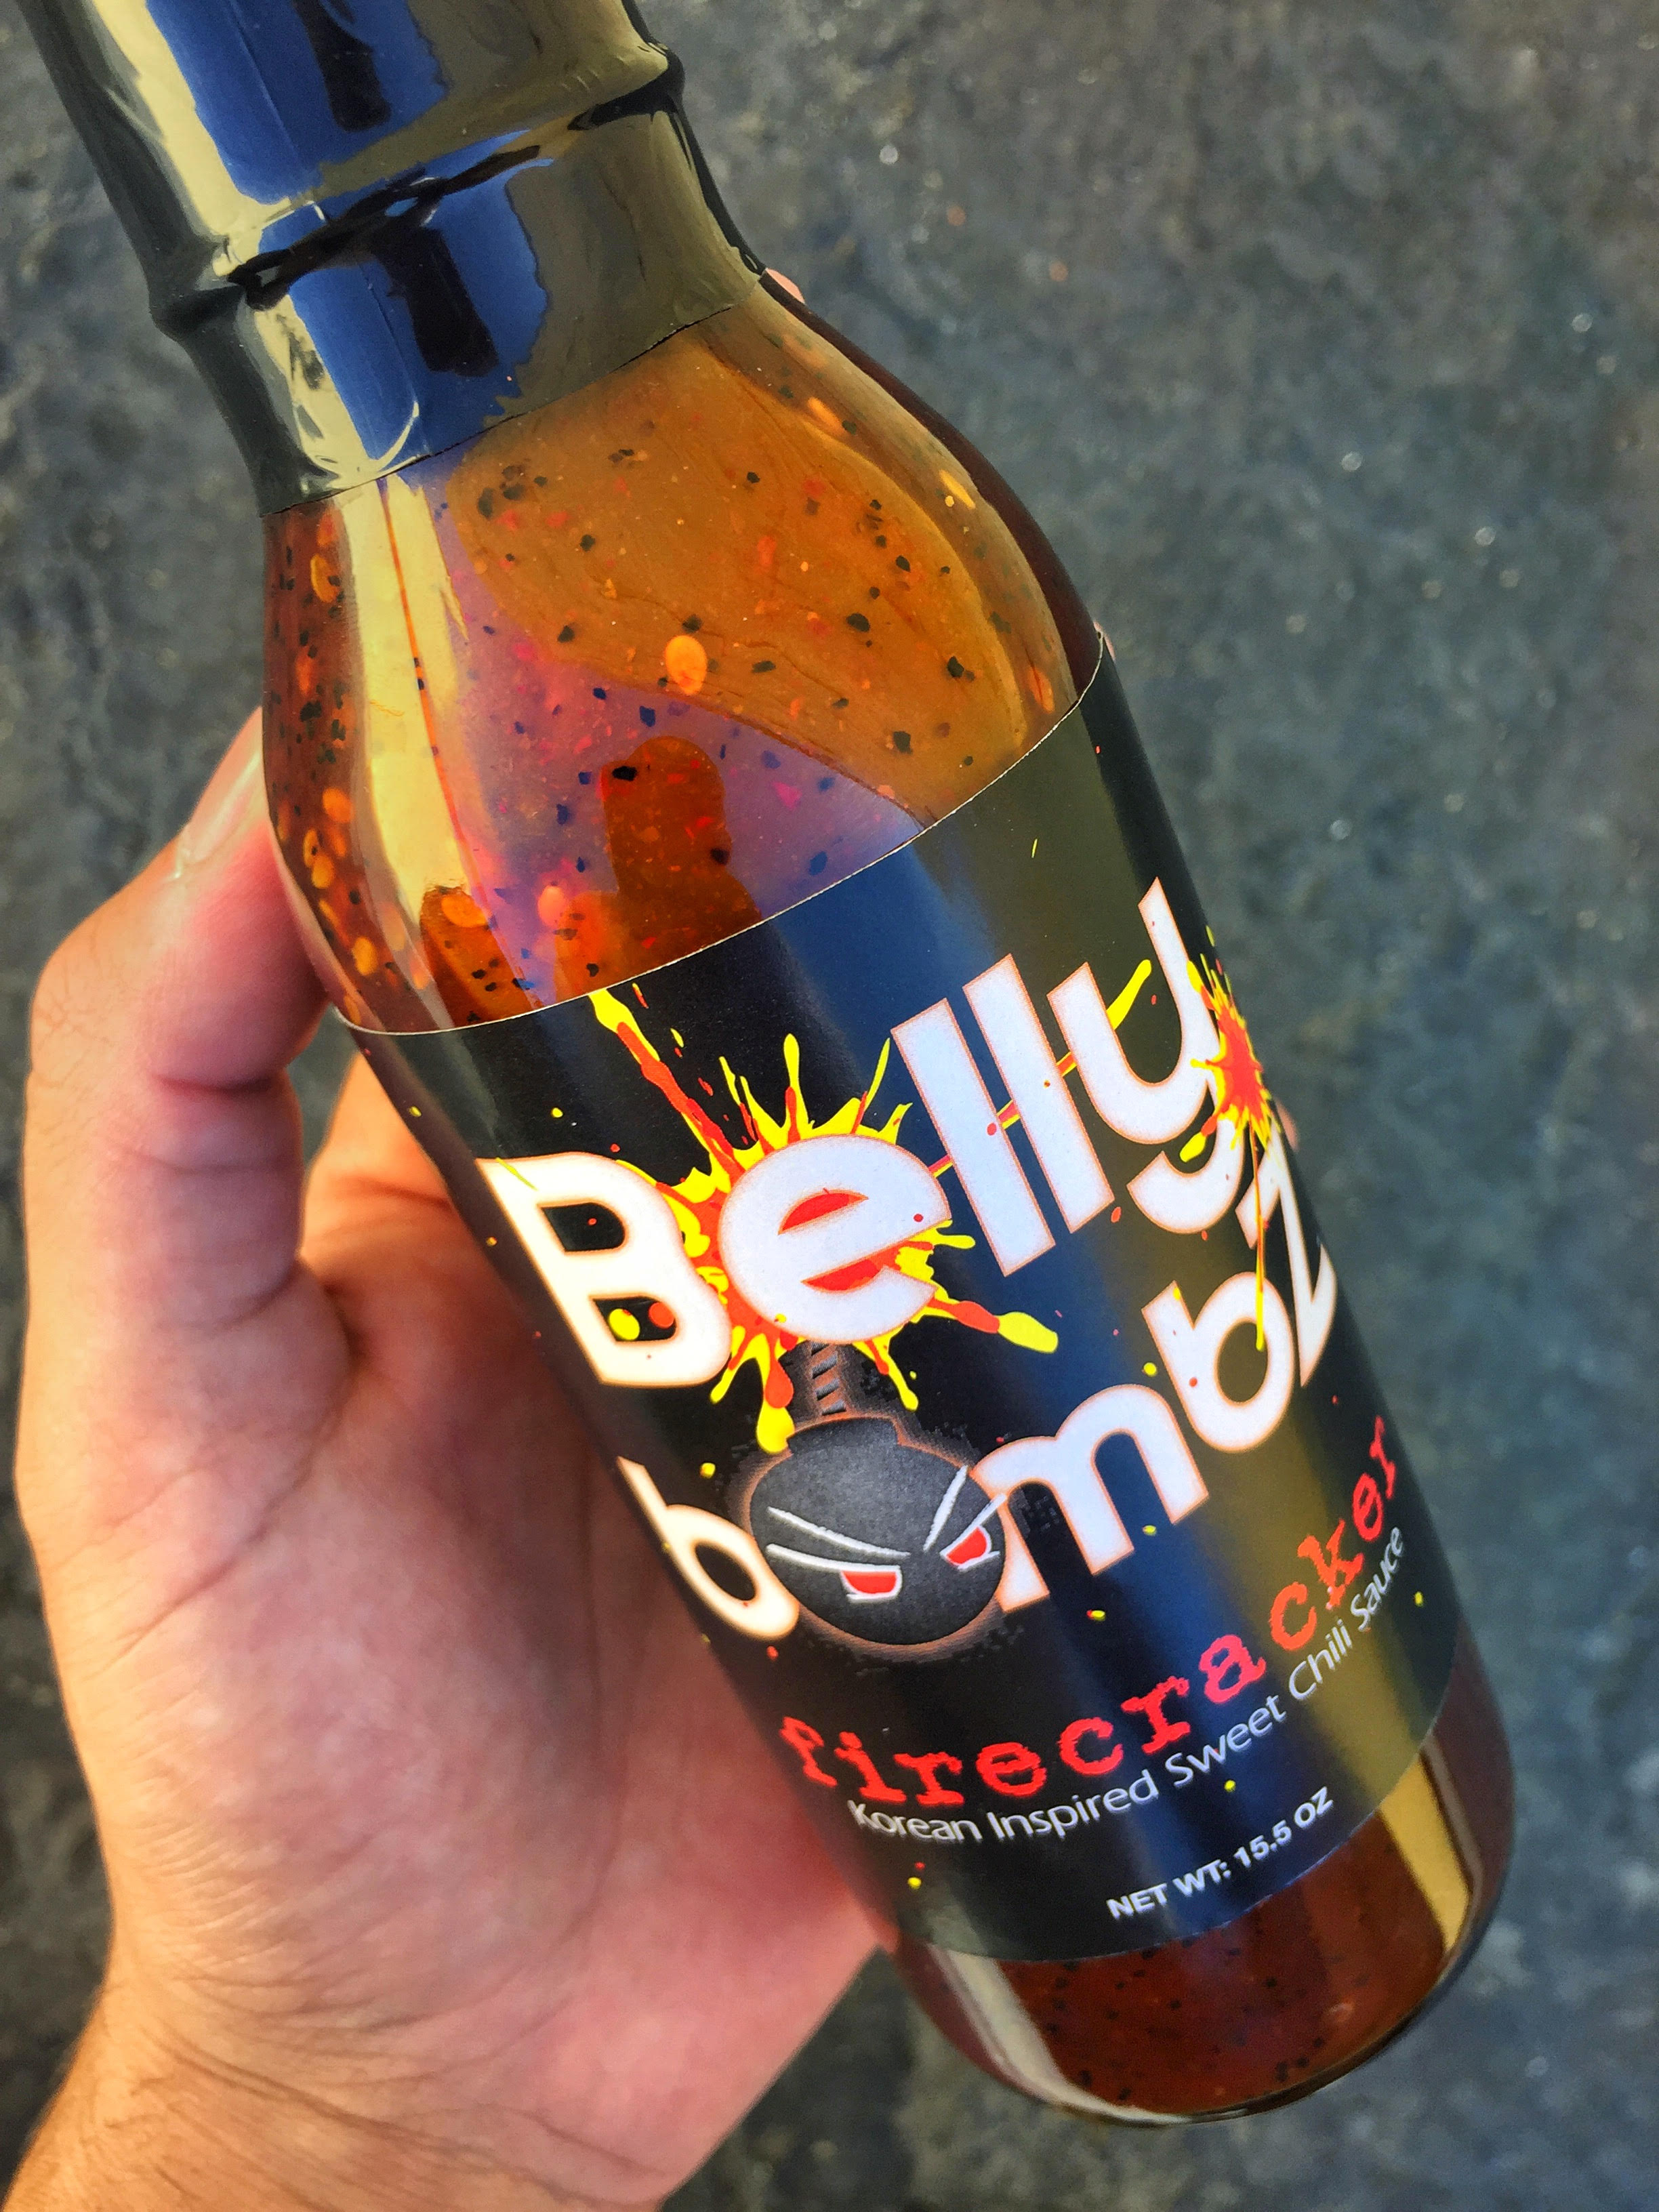 Belly Bombz Firecracker - Your favorite sweet and spicy Korean inspired dishes, all made with one sauce!Originally used as a traditional Korean Fried Chicken sauce on our food trucks and at our Southern California restaurants, Belly Bombz